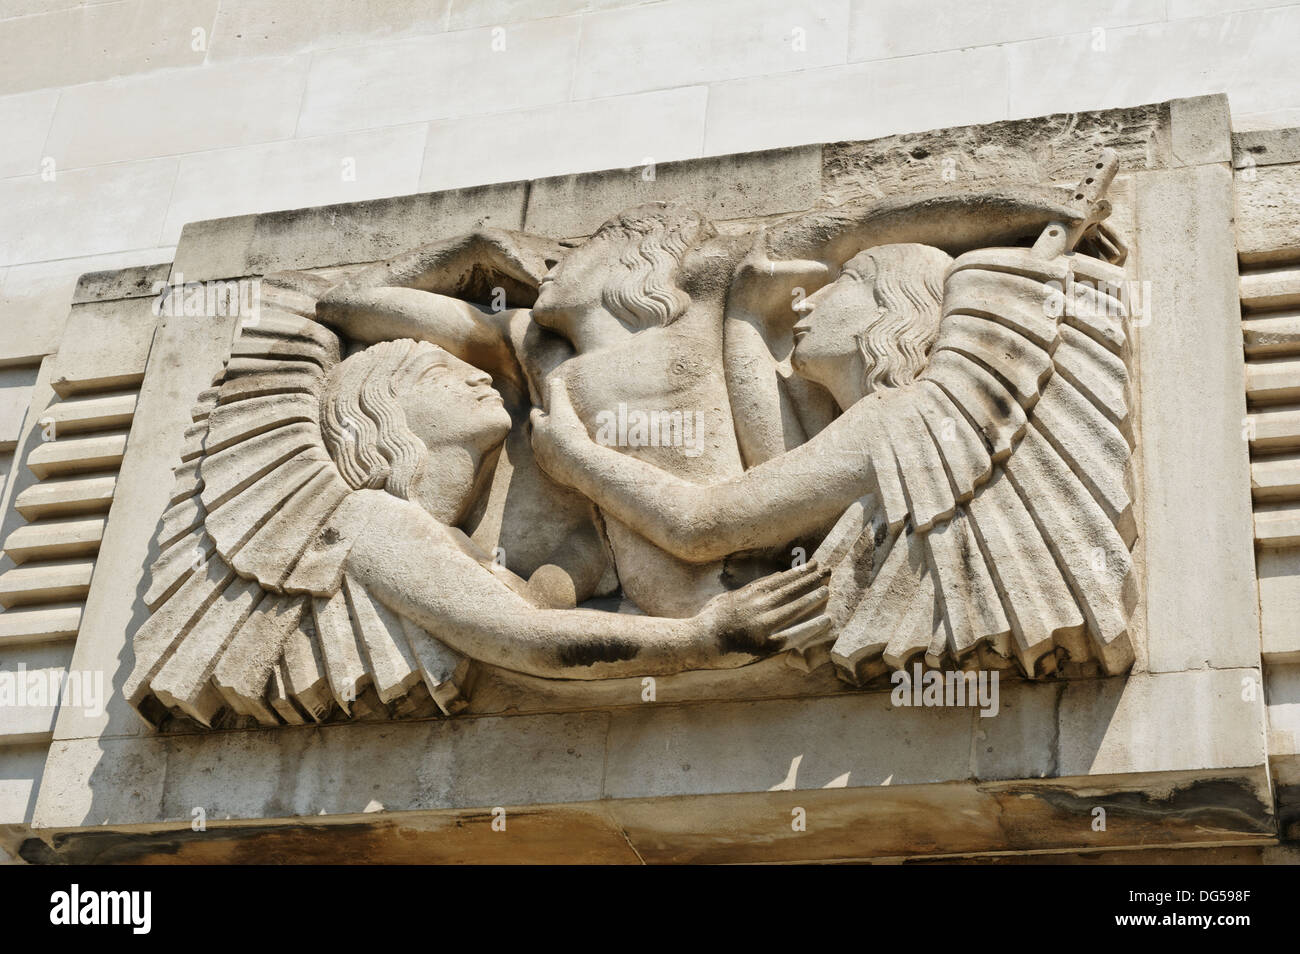 'Ariel hearing Celestial music' at the side of the BBC Broadcasting House, London, England, United Kingdom. - Stock Image